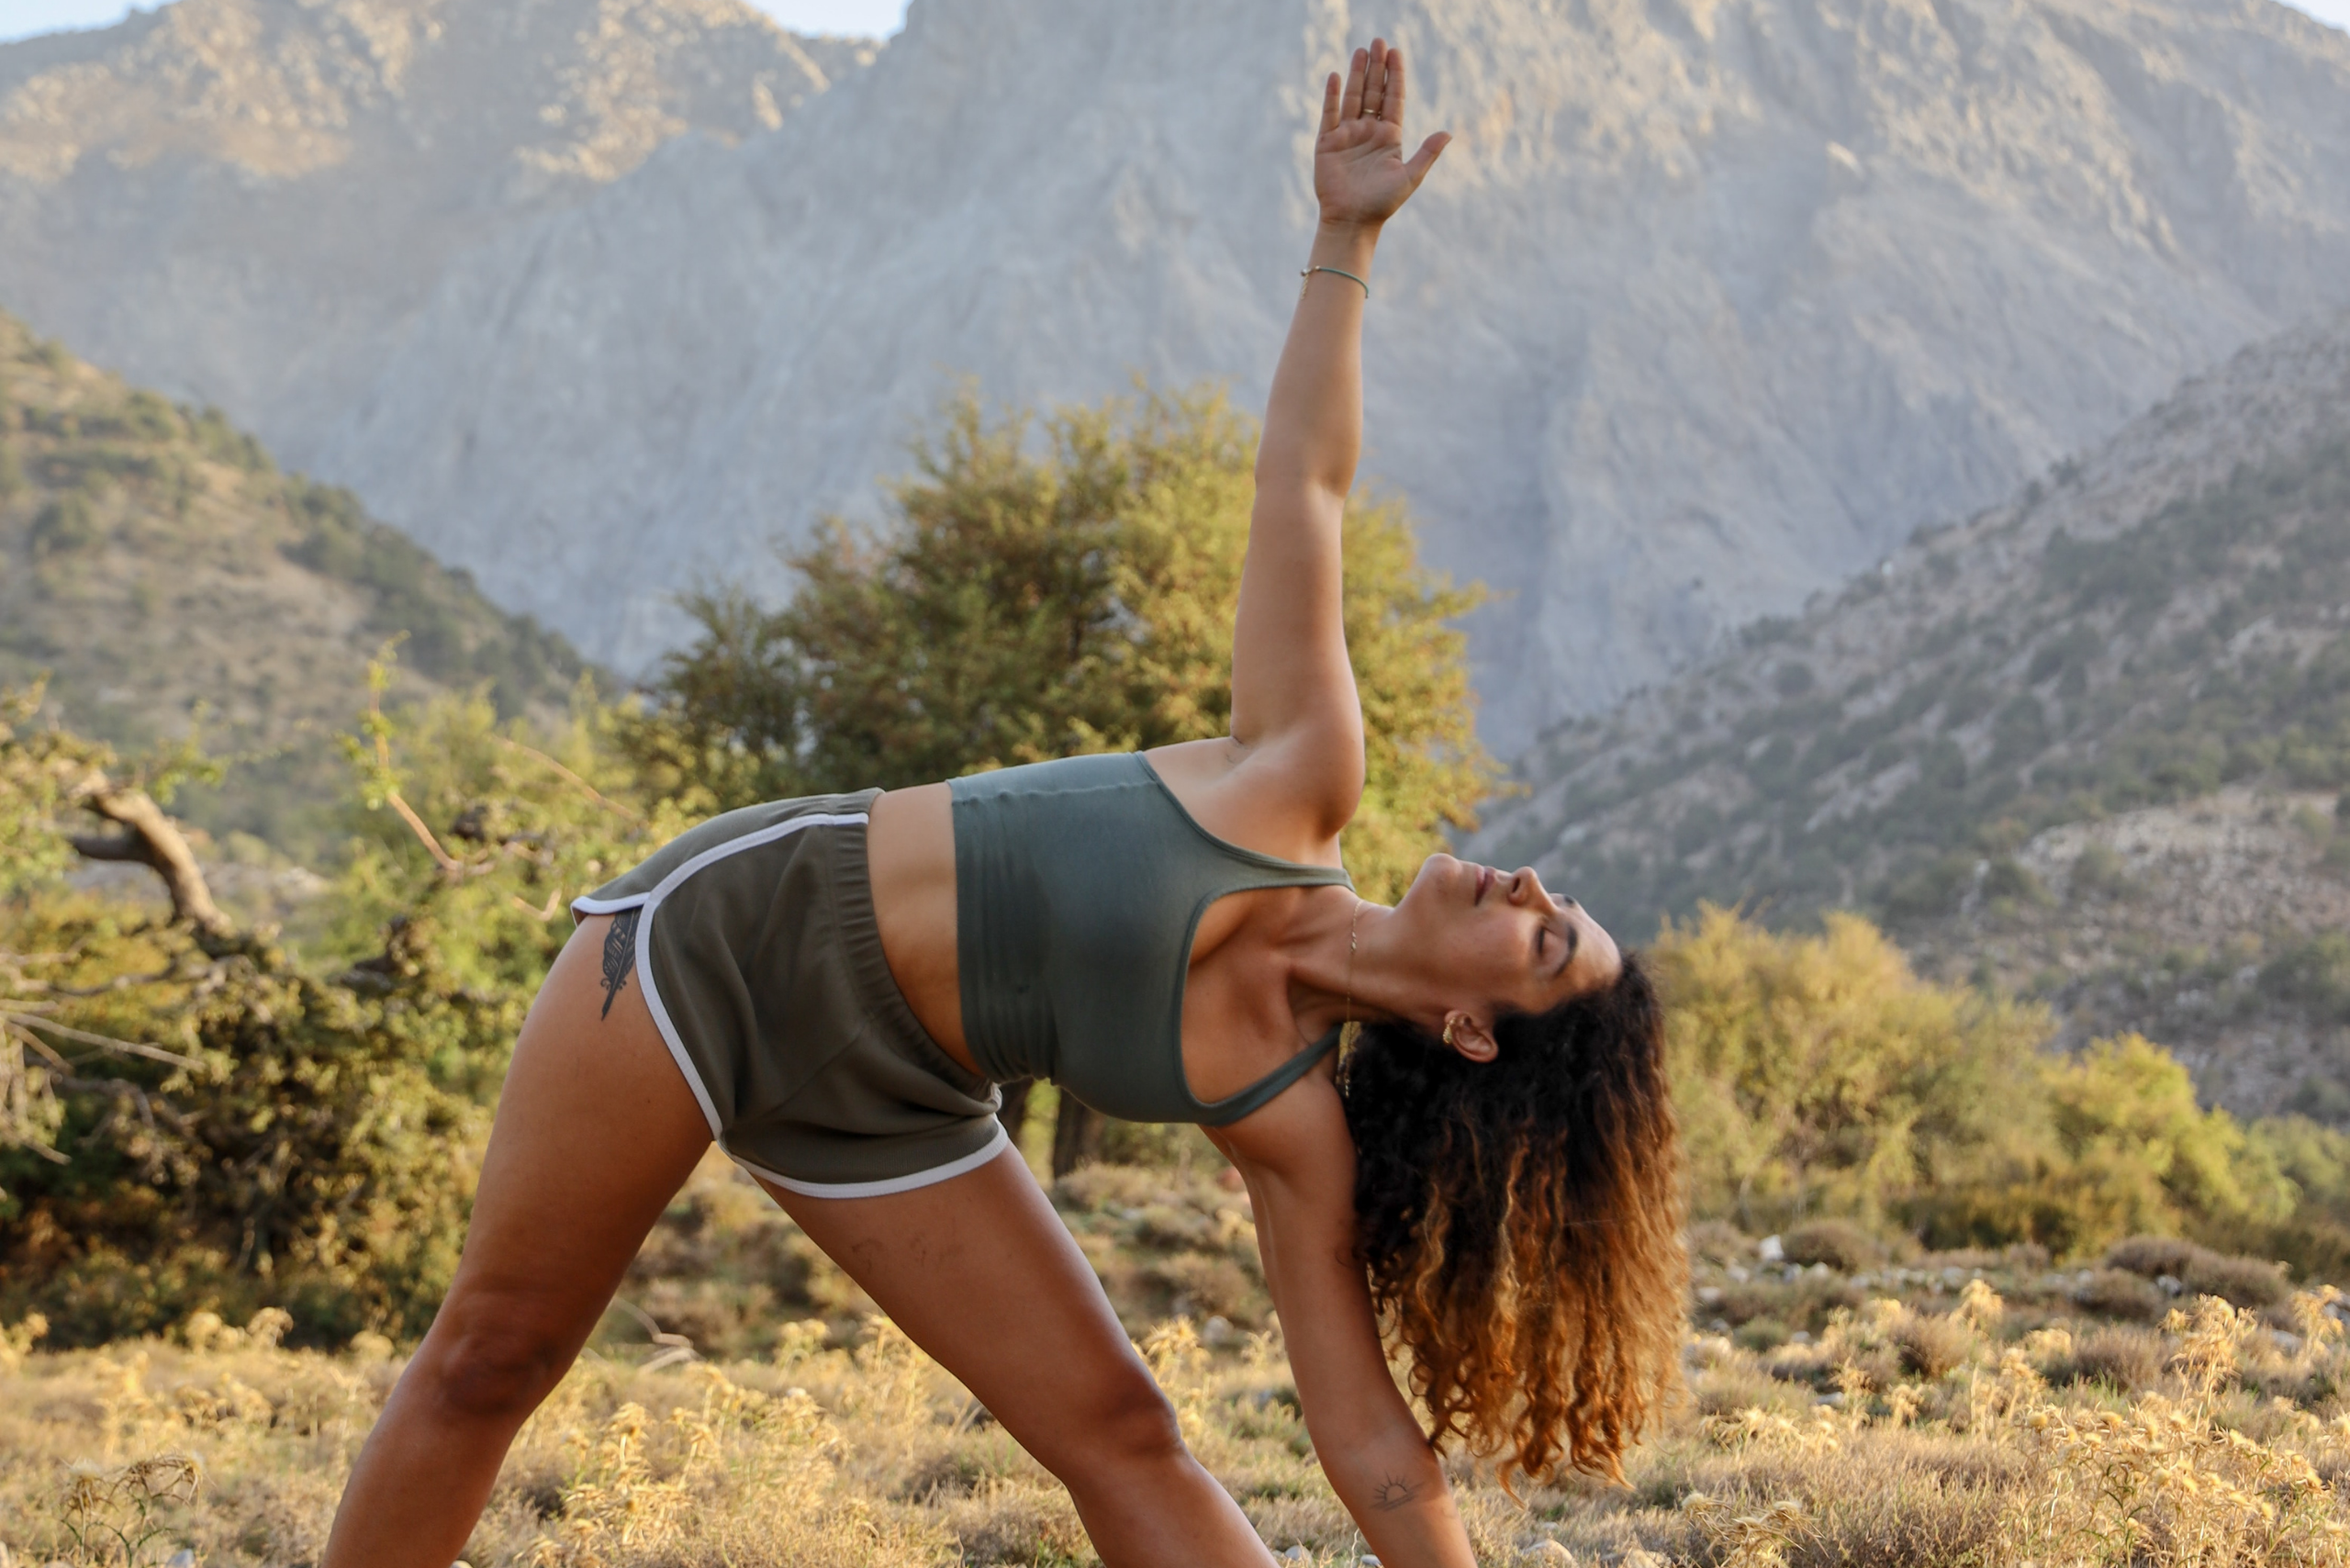 the function of side bends in Yoga